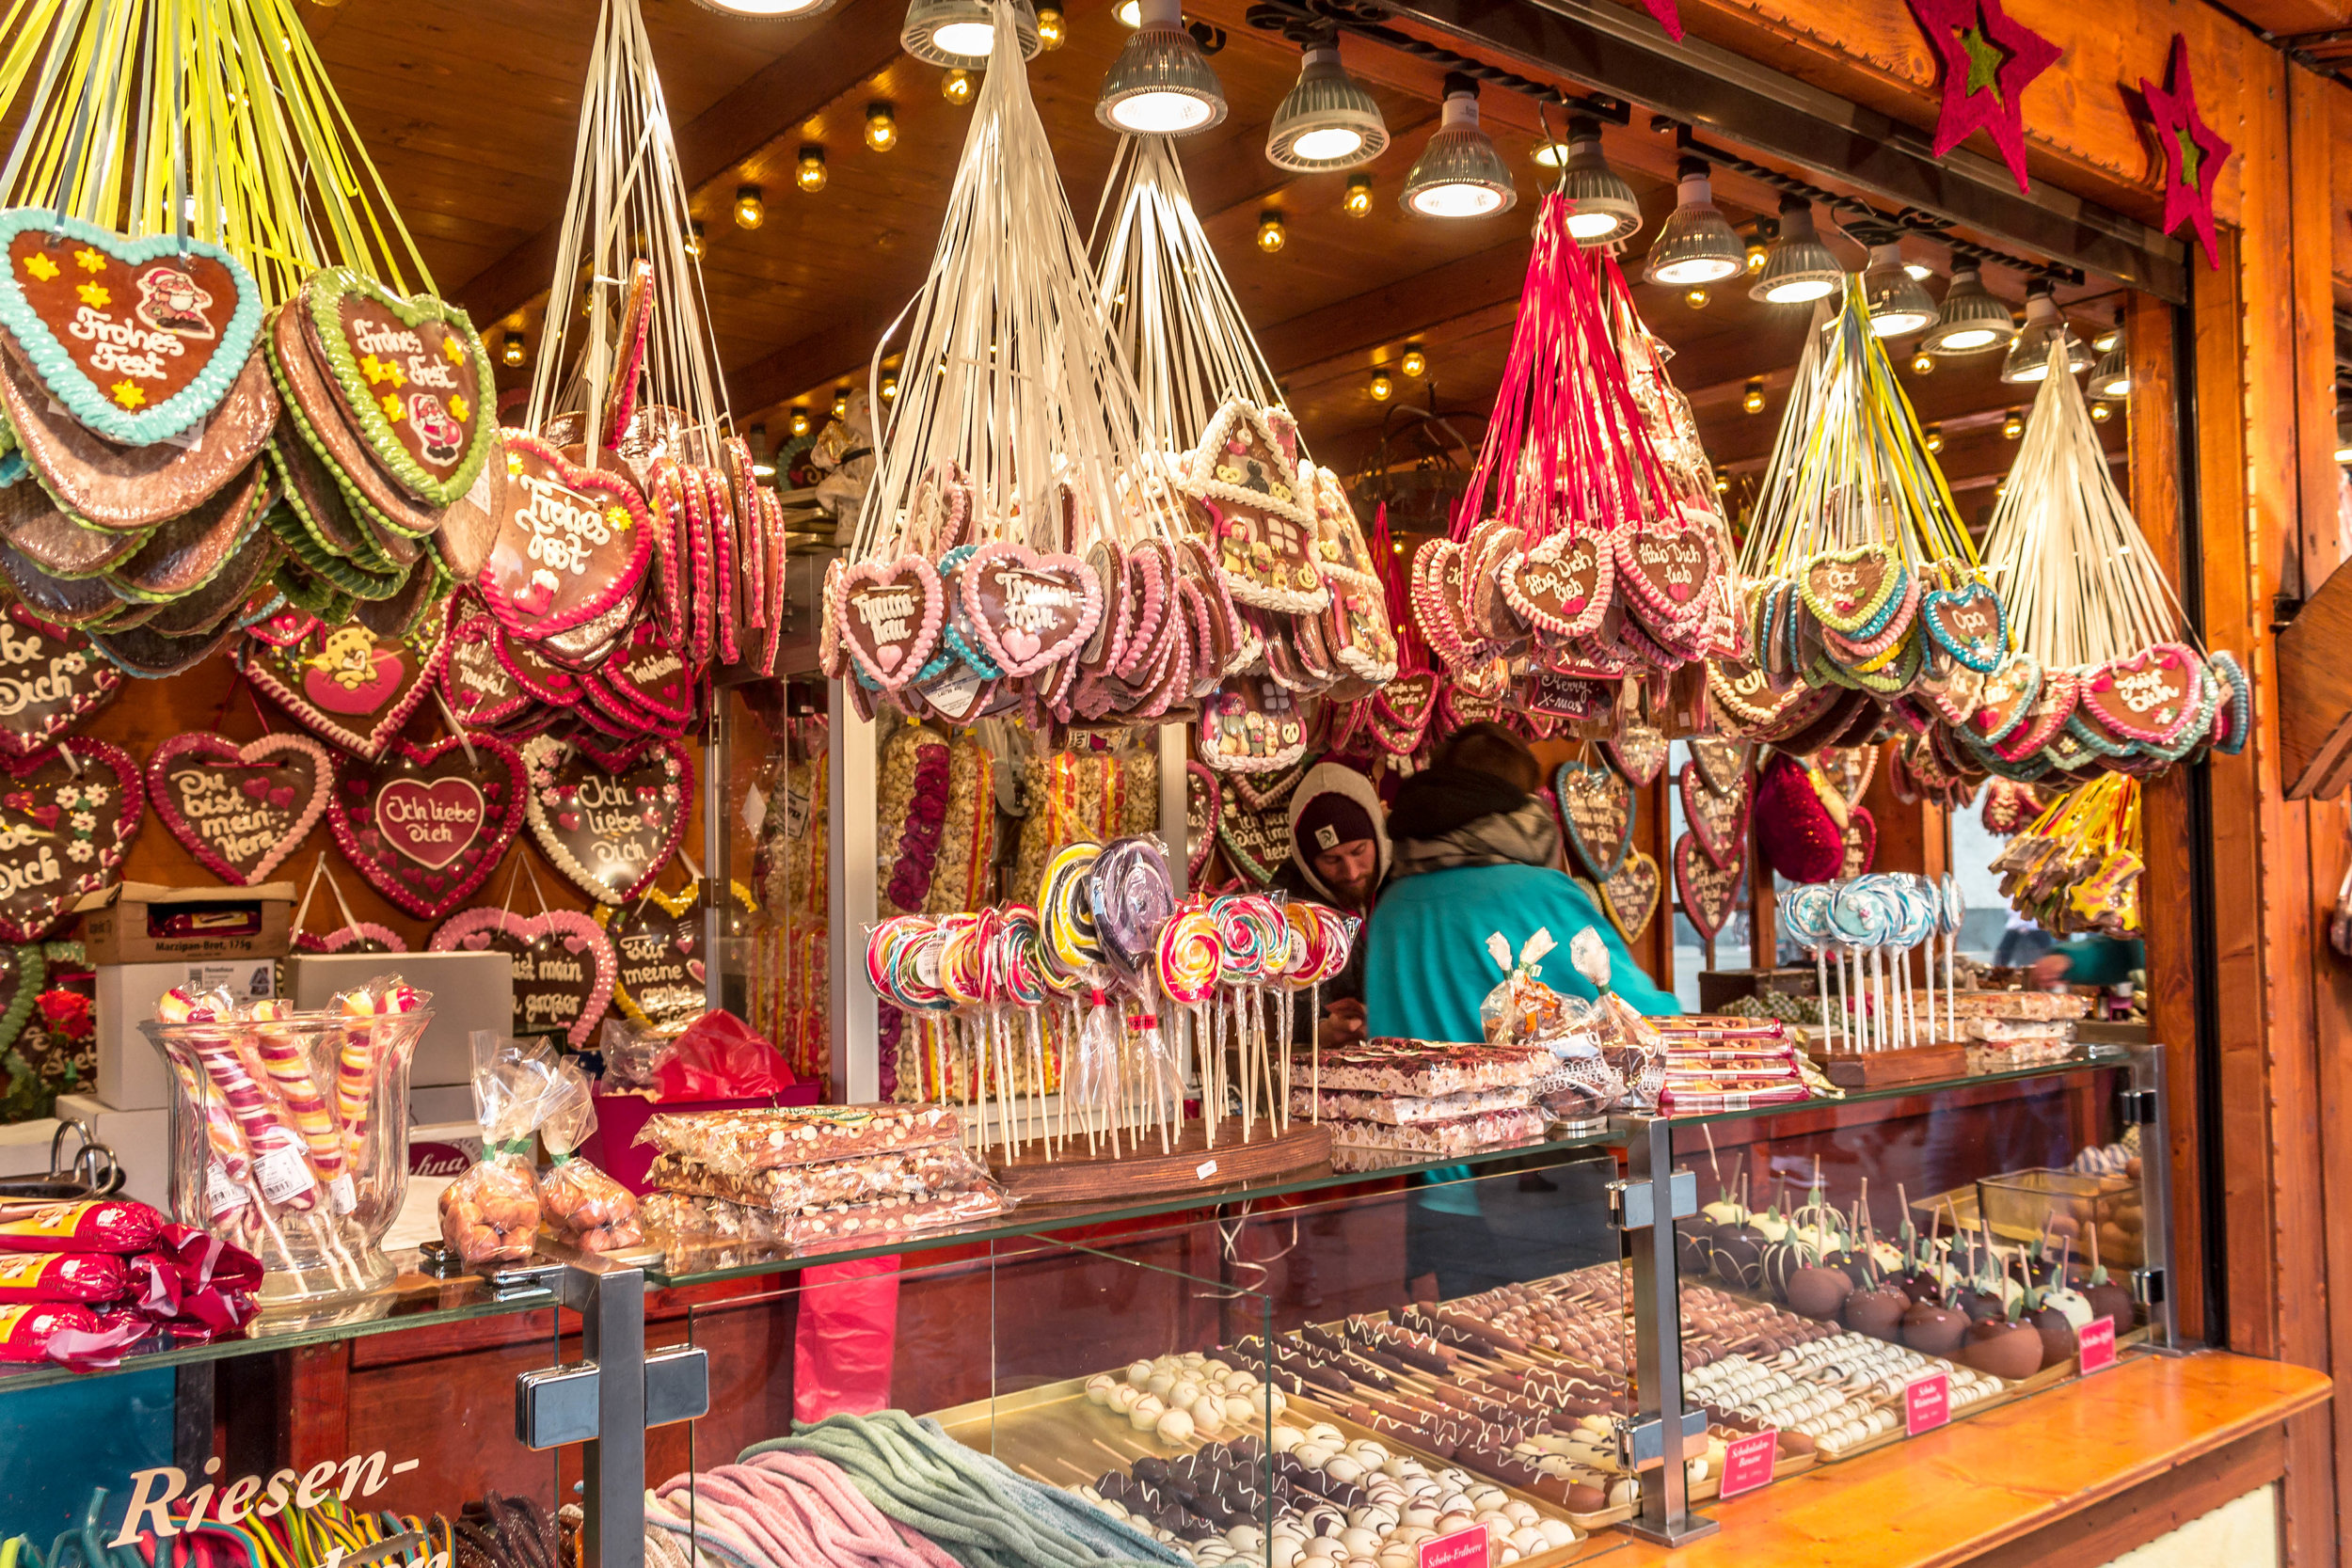 food guide to German Christmas markets